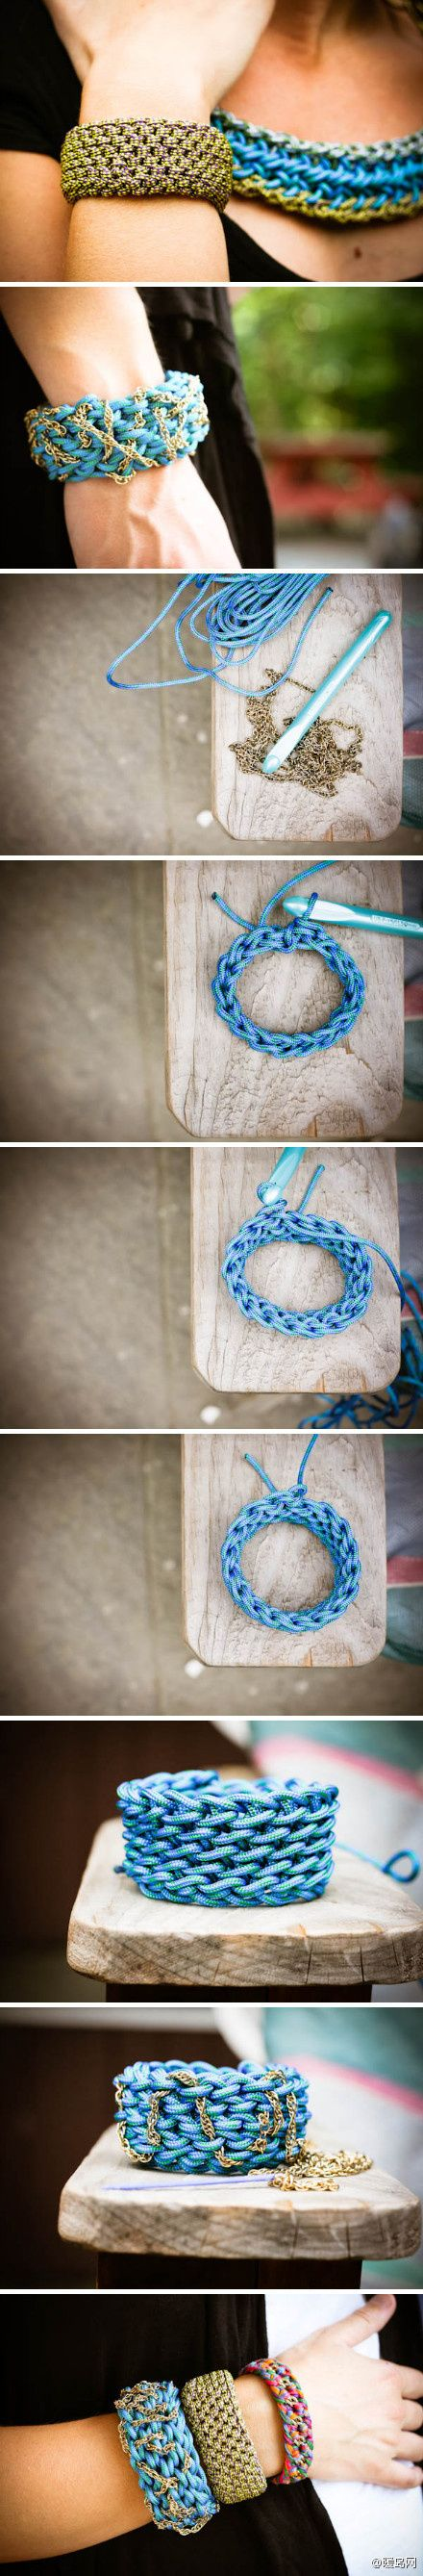 crochet bracelets:: I'm going to have to do this.